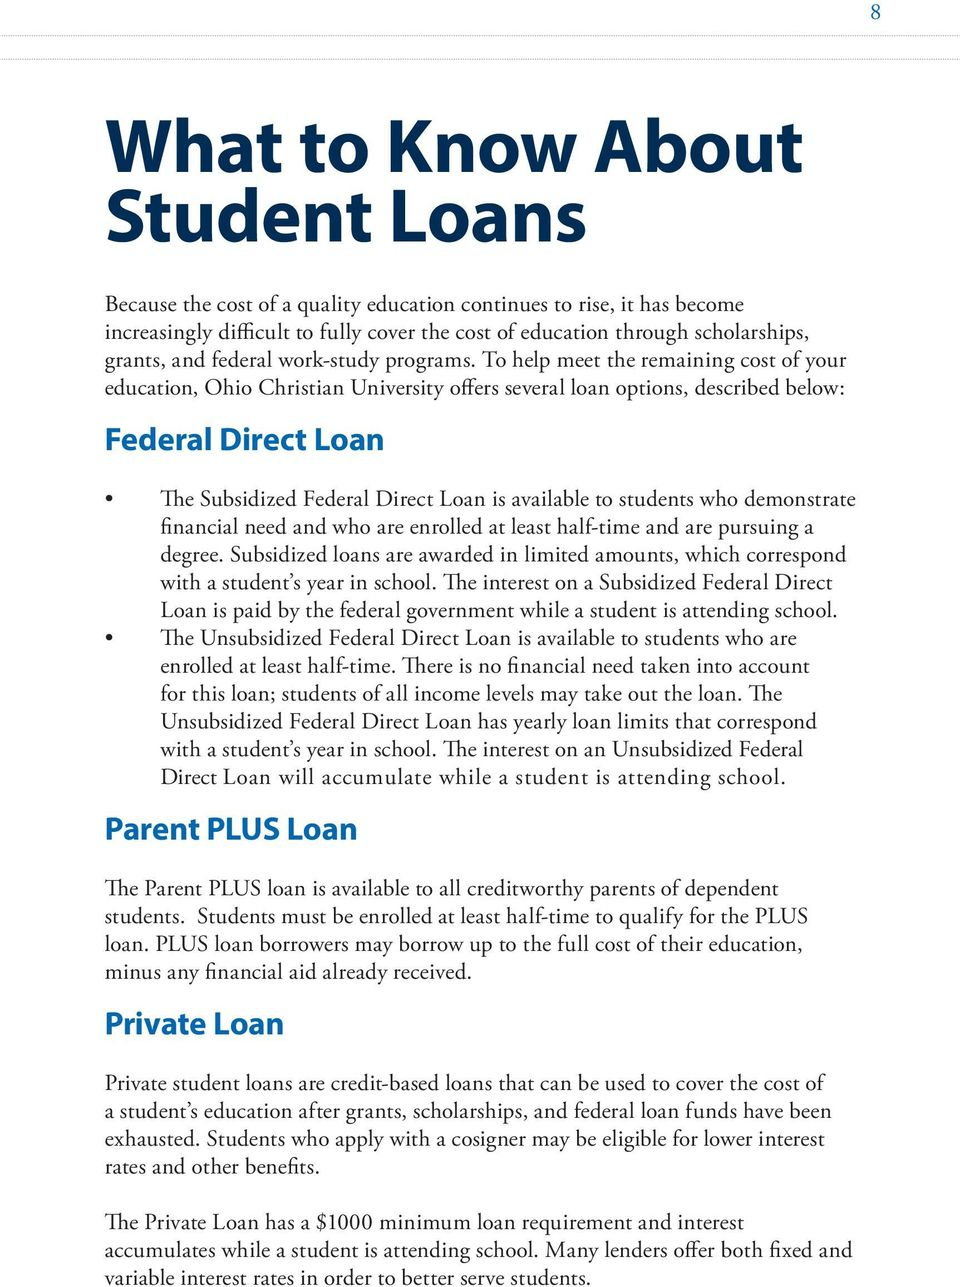 To help meet the remaining cost of your education, Ohio Christian University offers several loan options, described below: Federal Direct Loan The Subsidized Federal Direct Loan is available to